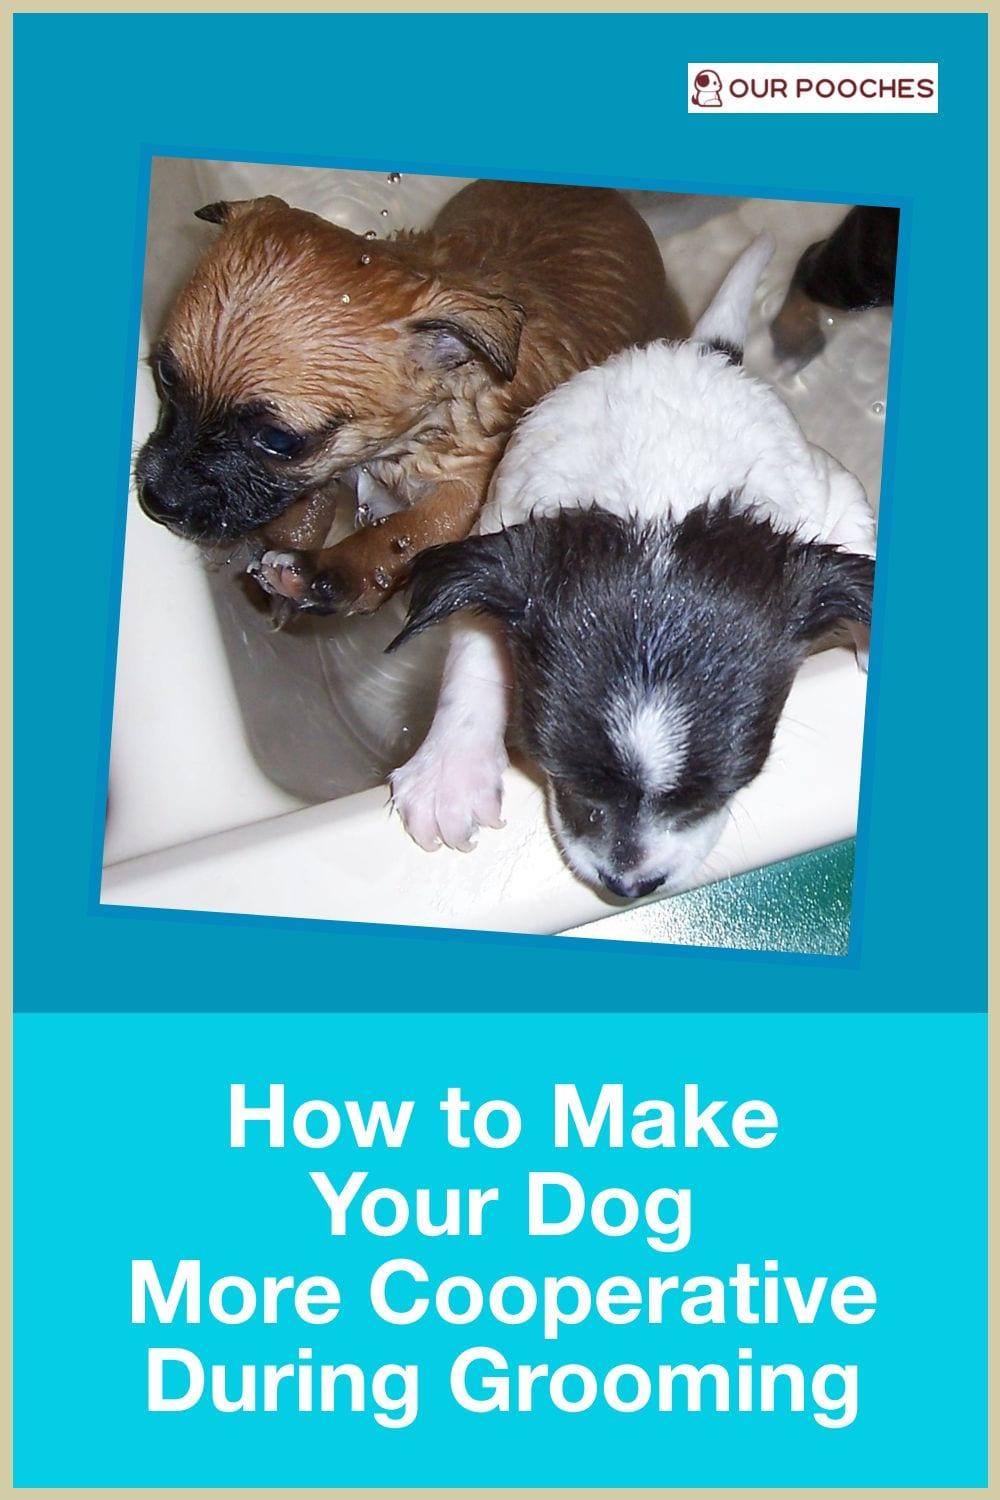 How to Make Your Dog More Cooperative for Grooming